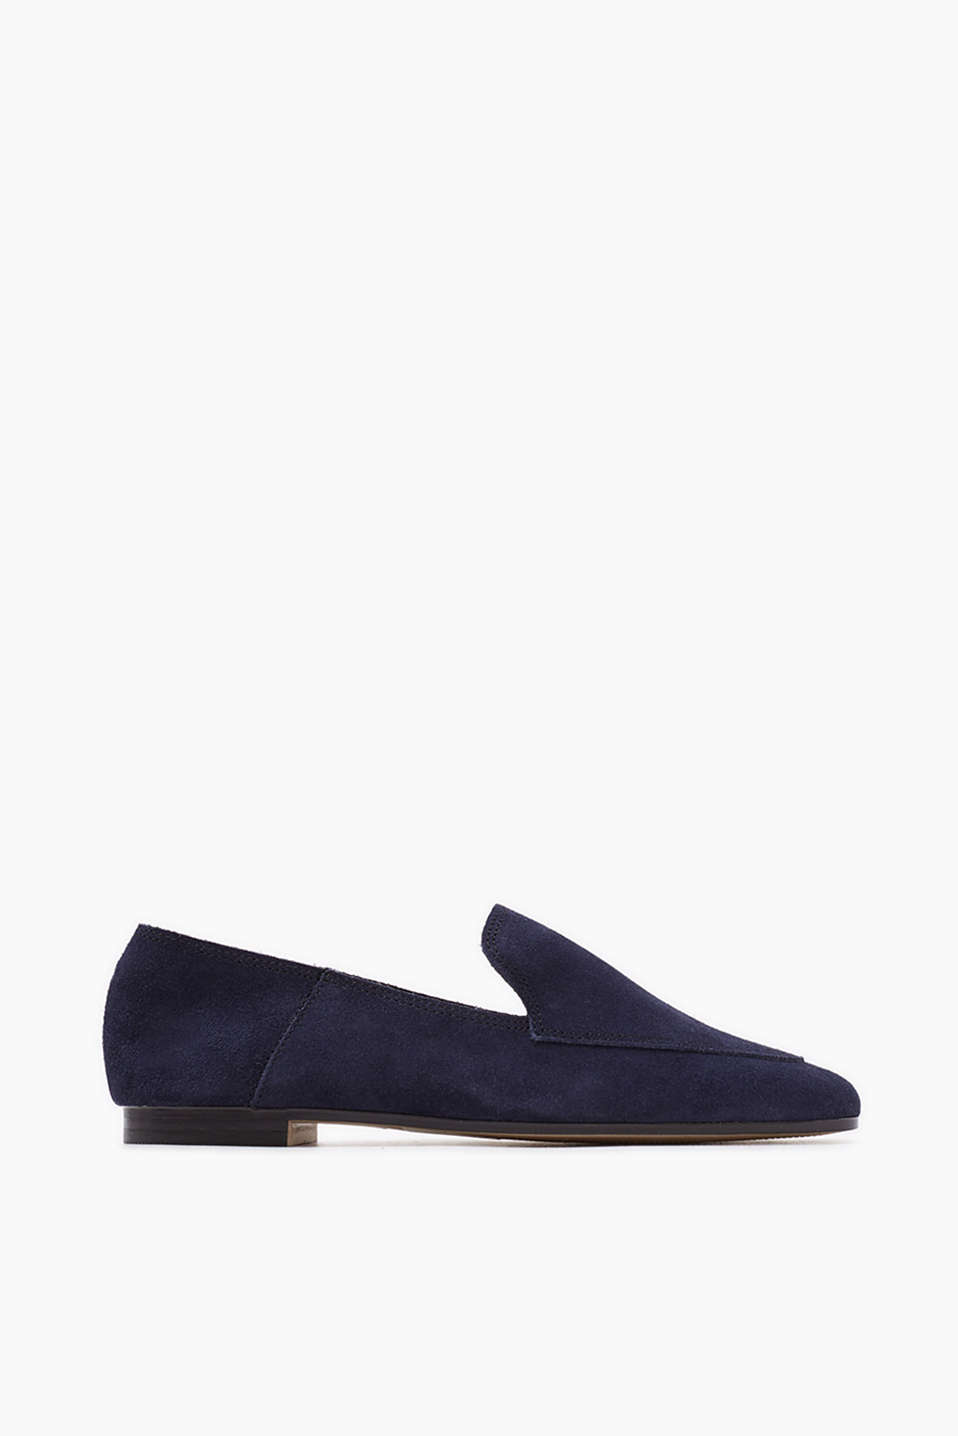 Both a loafer and a slip-on - in genuine leather